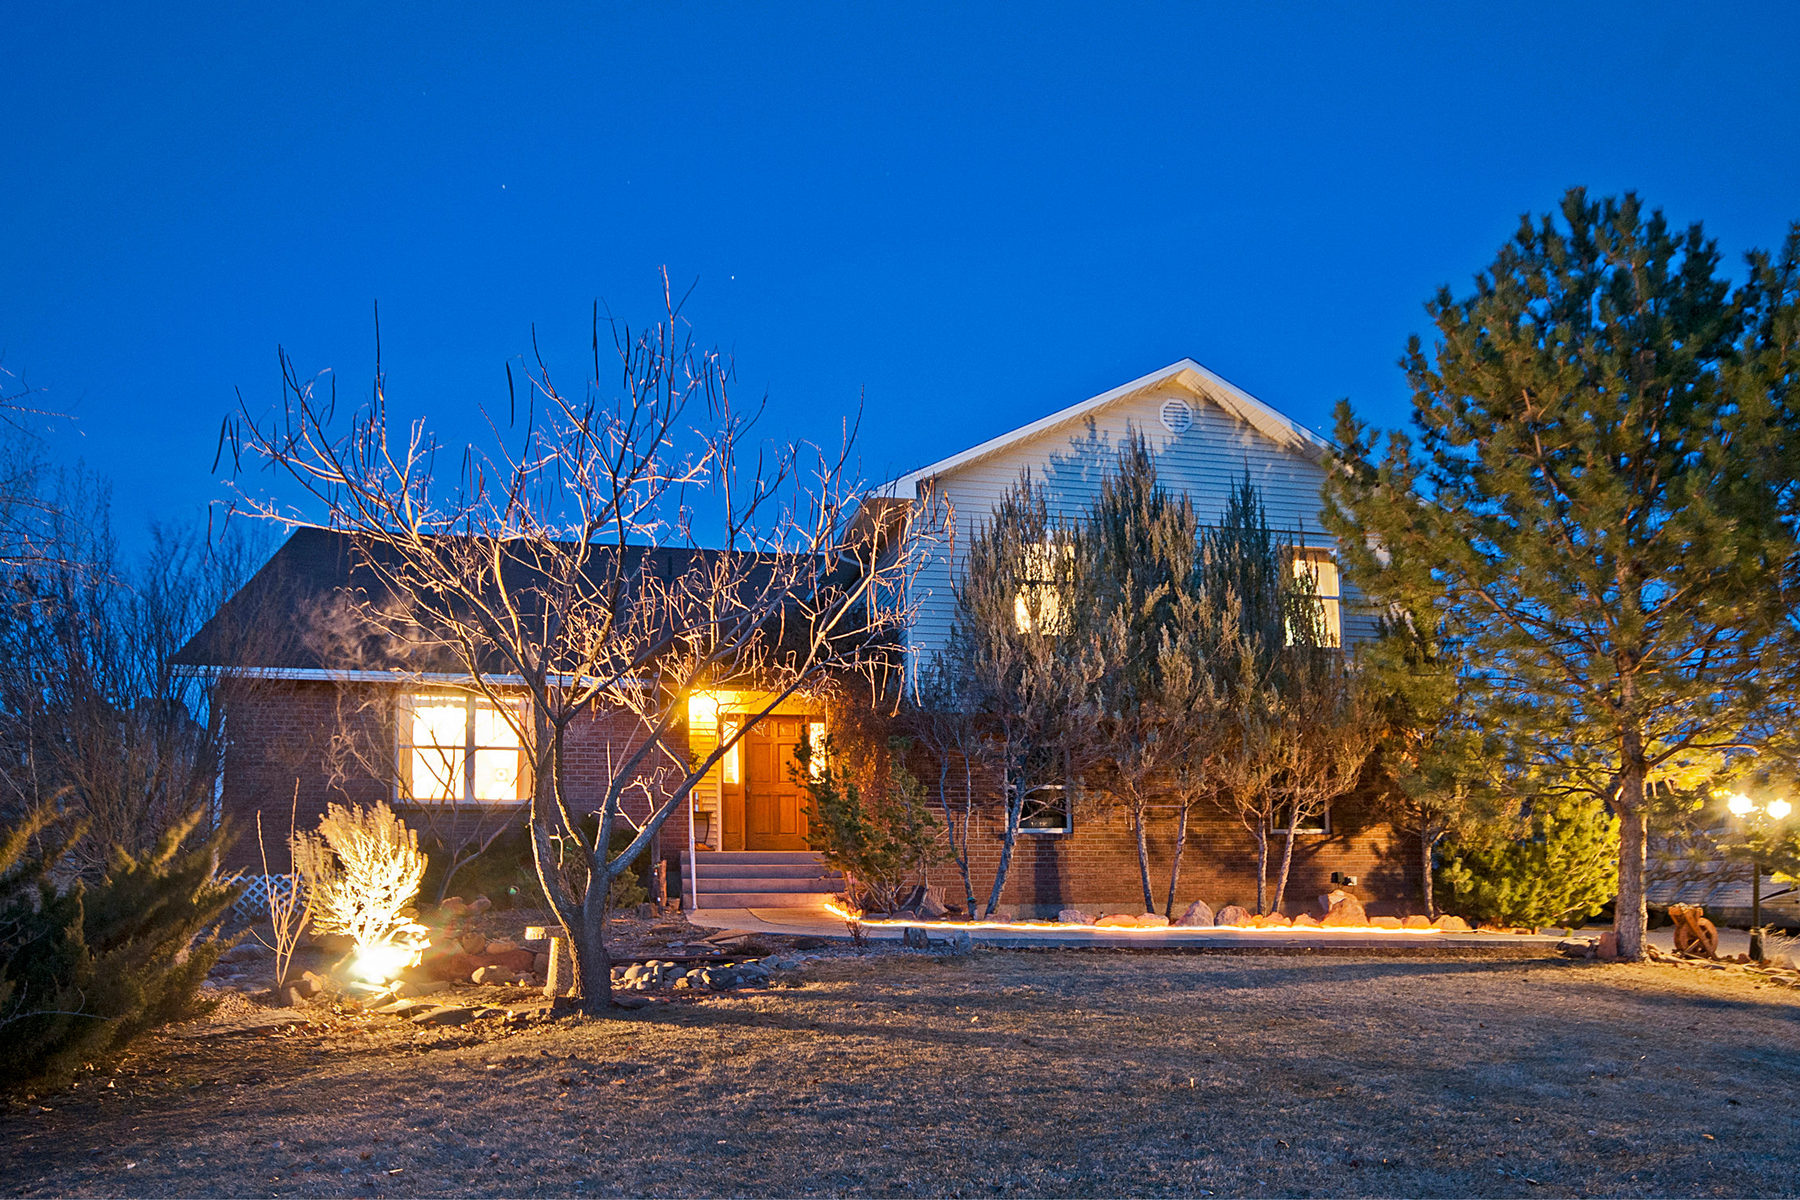 Property For Sale at Profitable Moab Bed & Breakfast Great Lifestyle